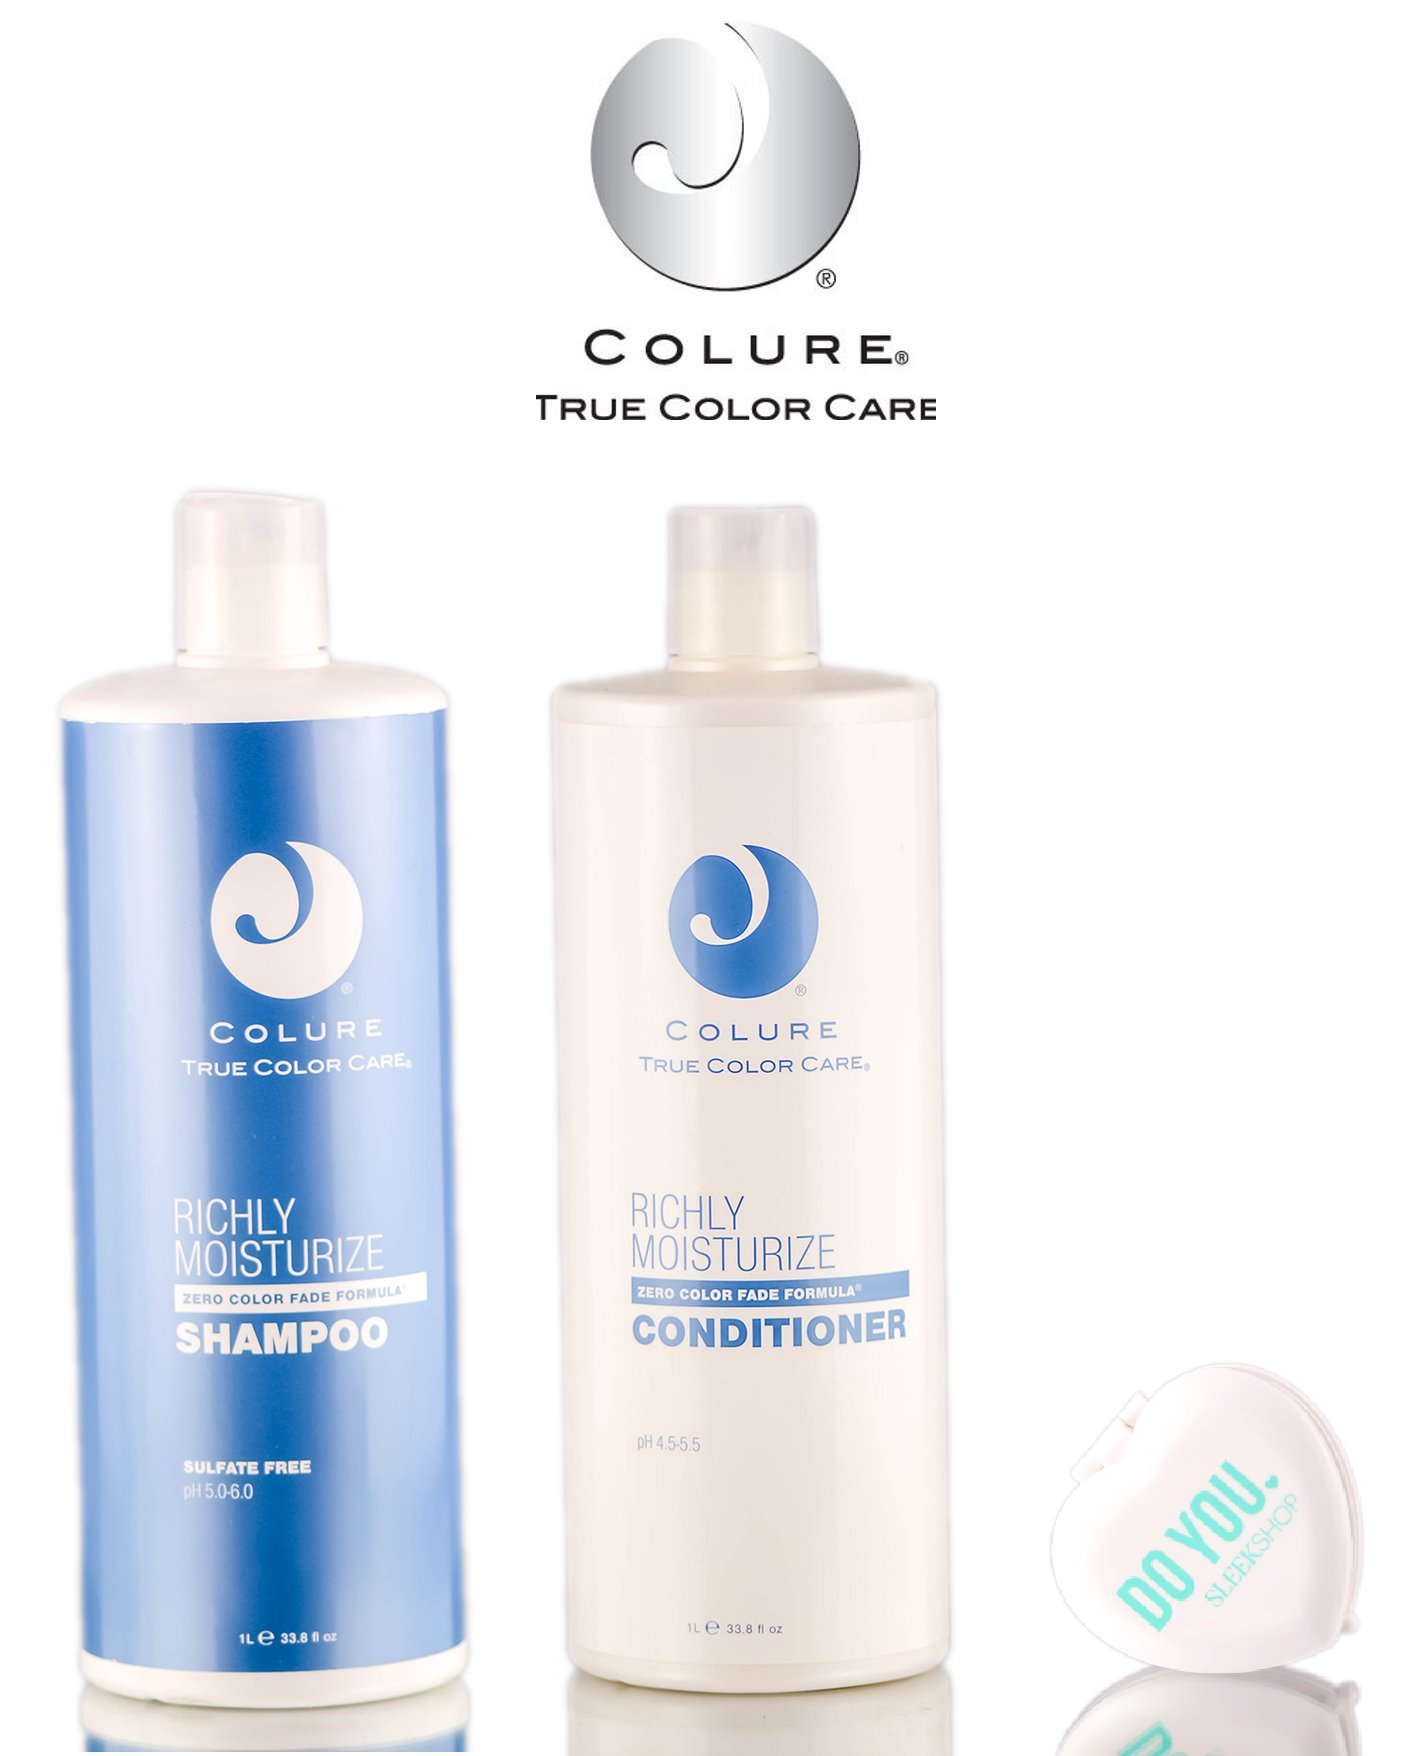 Colure True Color Care Richly Moisturize Shampoo & Conditioner DUO Set (with Sleek Compact Mirror) (33.8 oz Liter Large Kit) by COLURE